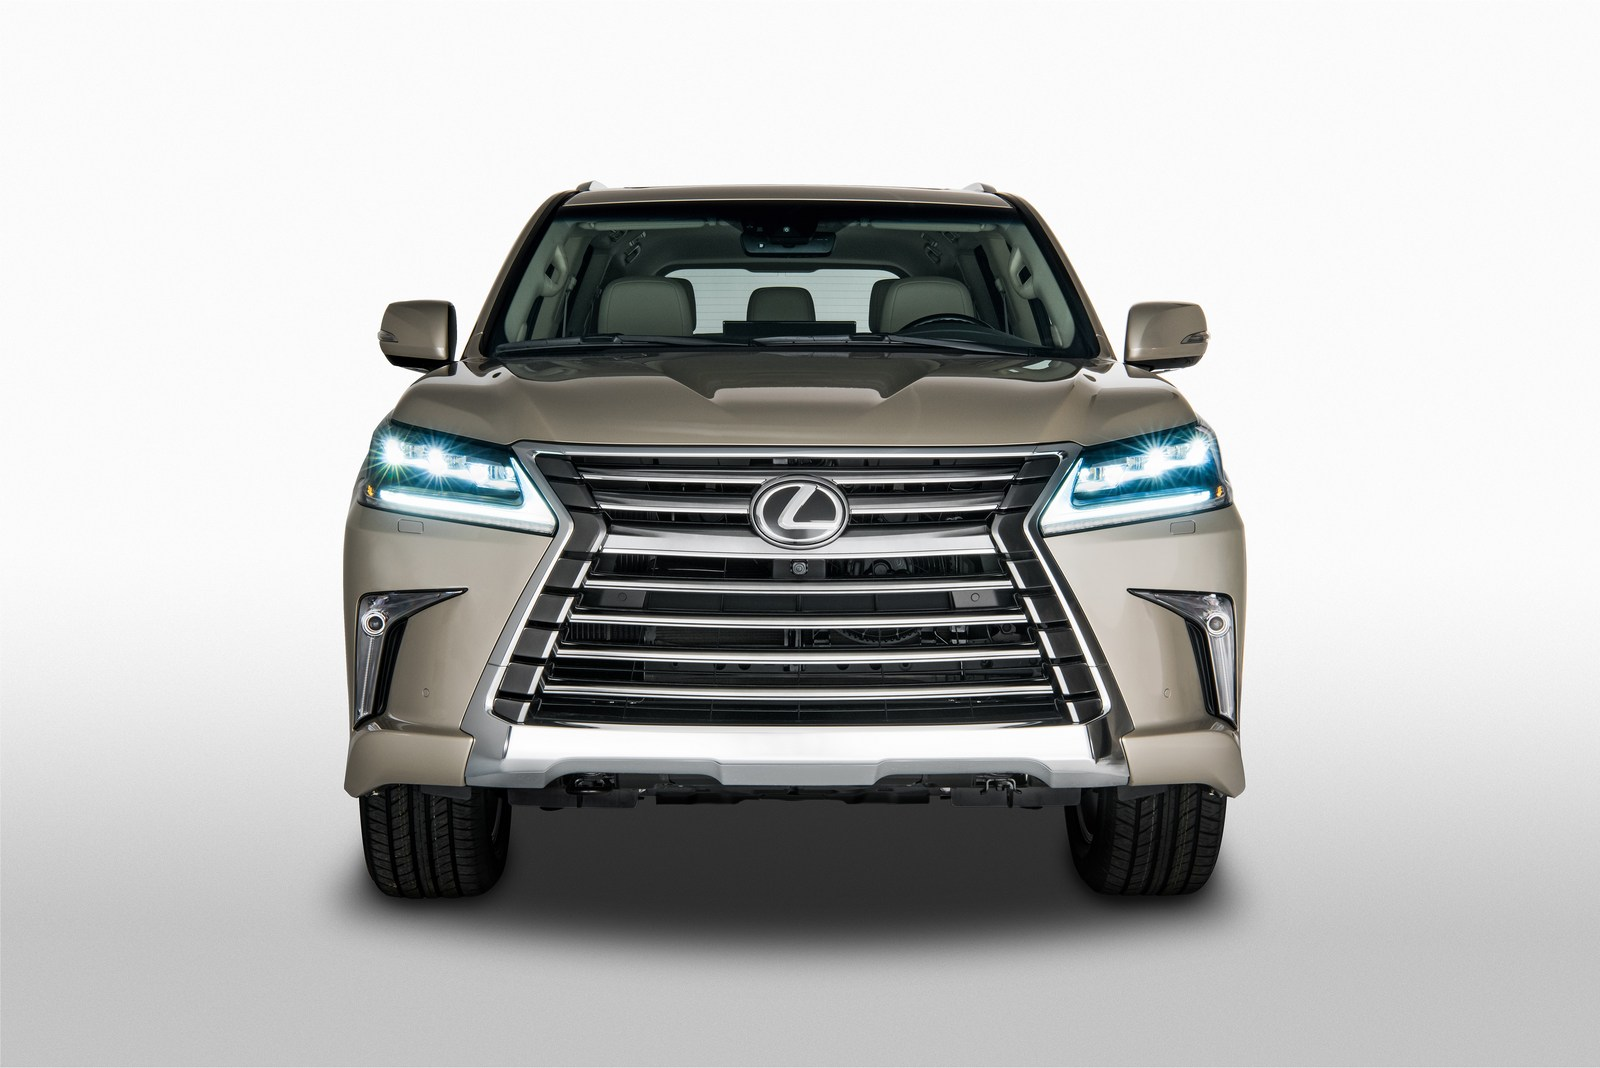 2018 lexus lx gains new two row variant with massive 50 6 1 430l boot carscoops. Black Bedroom Furniture Sets. Home Design Ideas